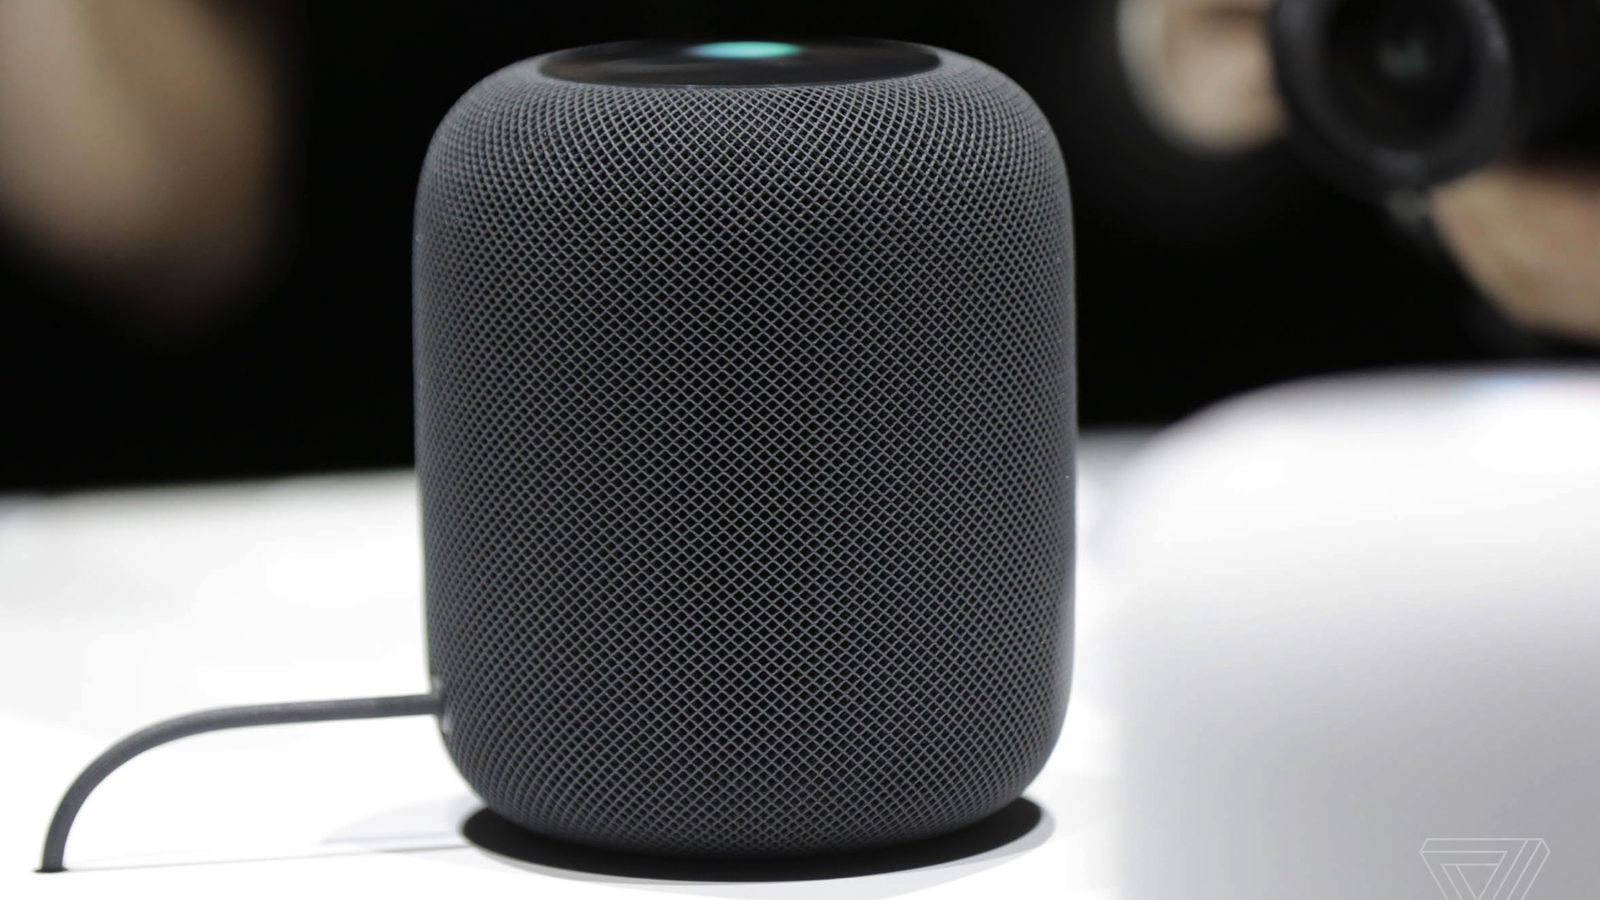 theverge.com - No one is building the smart speaker we actually want